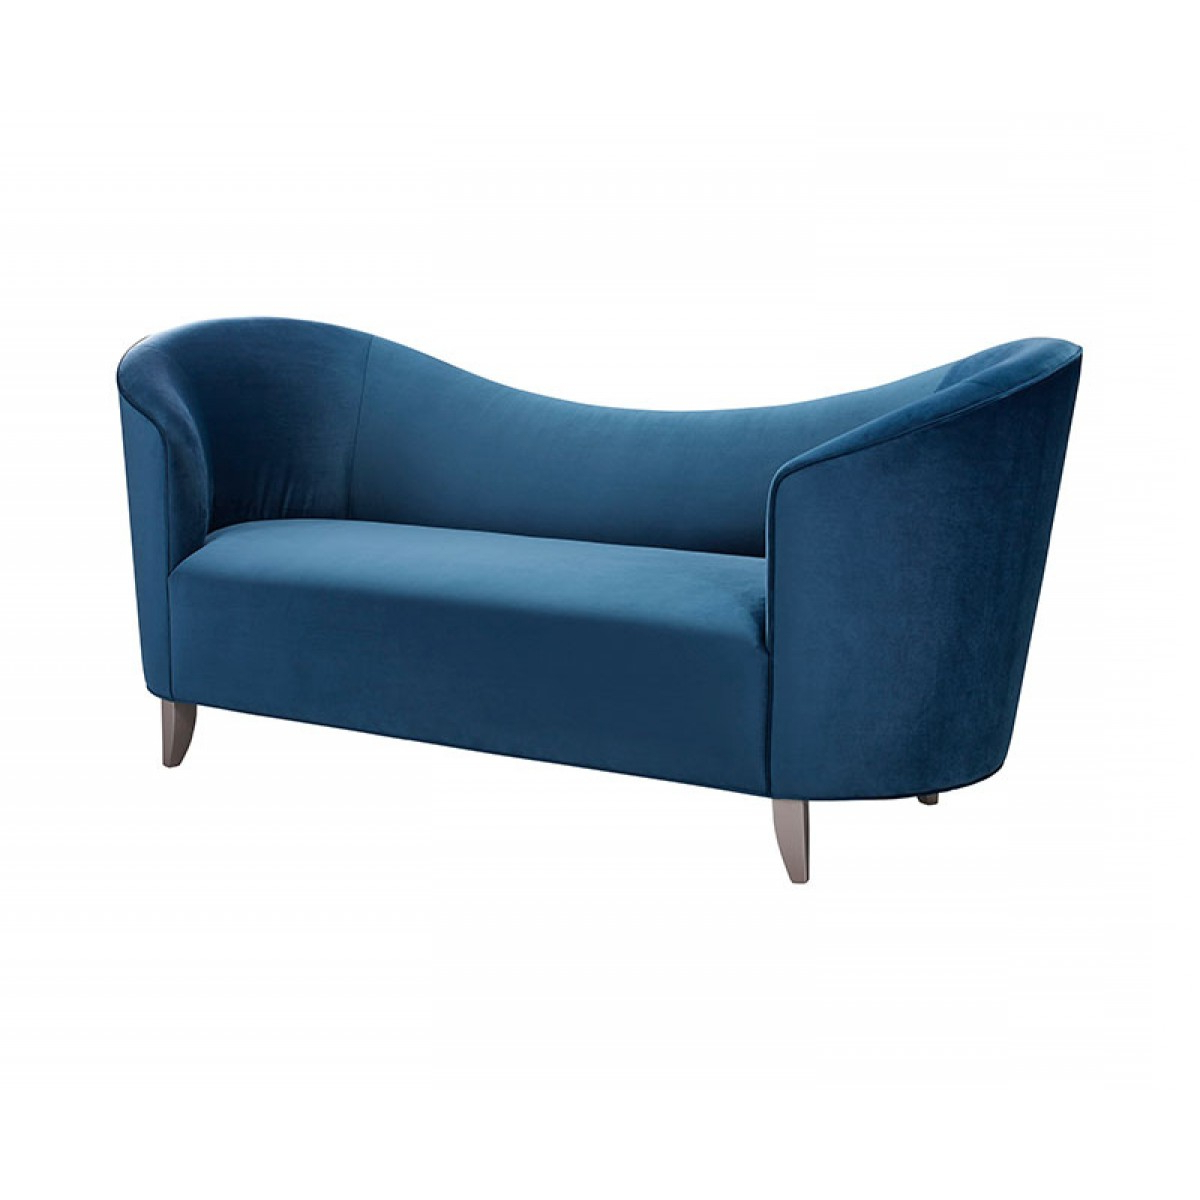 Josephine Sofa Chairs With Regard To Most Up To Date Thomasville Josephine Small Sofa (Gallery 8 of 20)